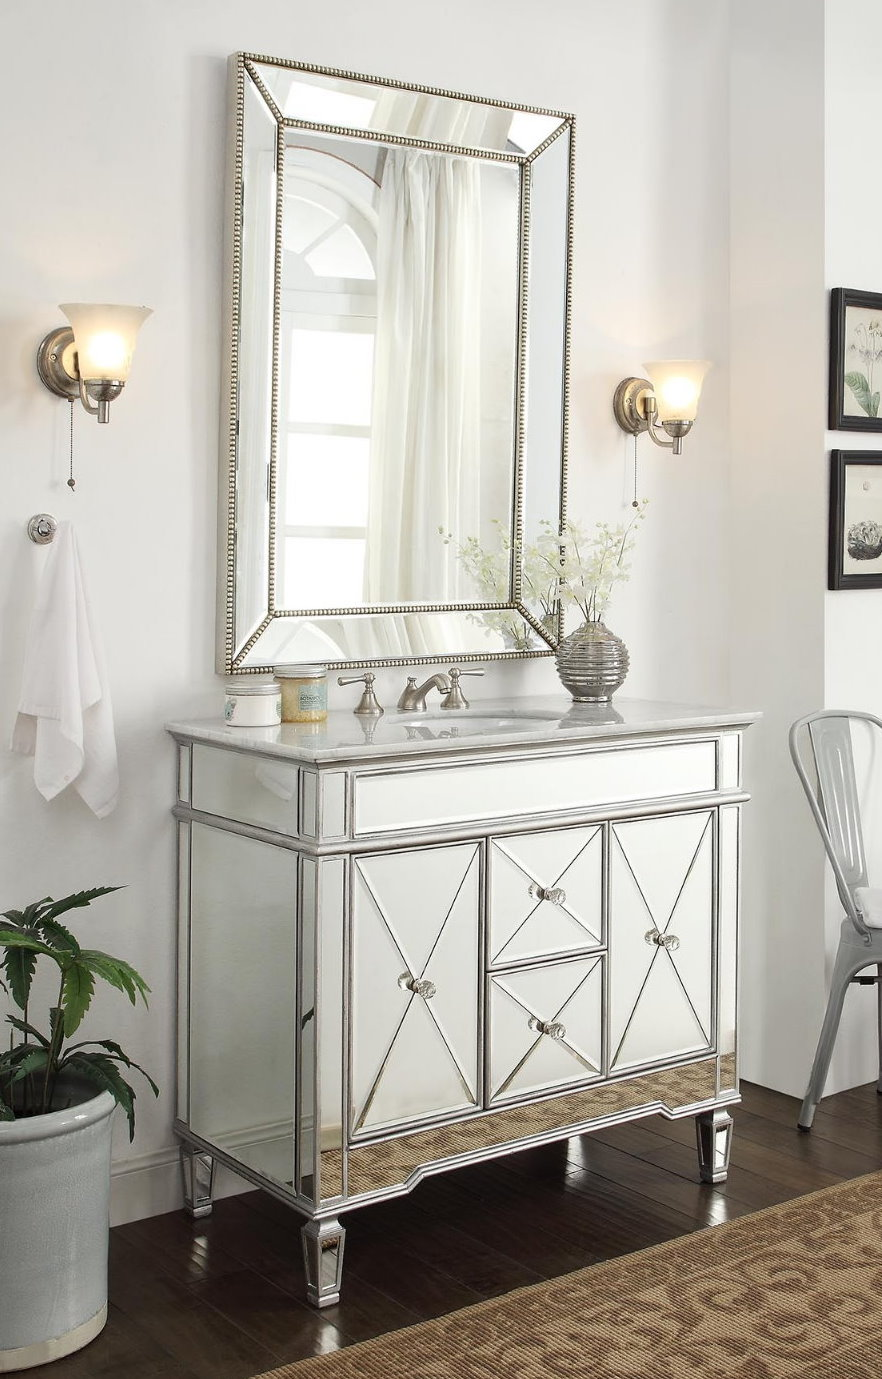 bathroom vanity with cabinet on top. 44 inch Adelina Mirrored Bathroom Vanity Cabinet White Top cabinet  Fully assembled